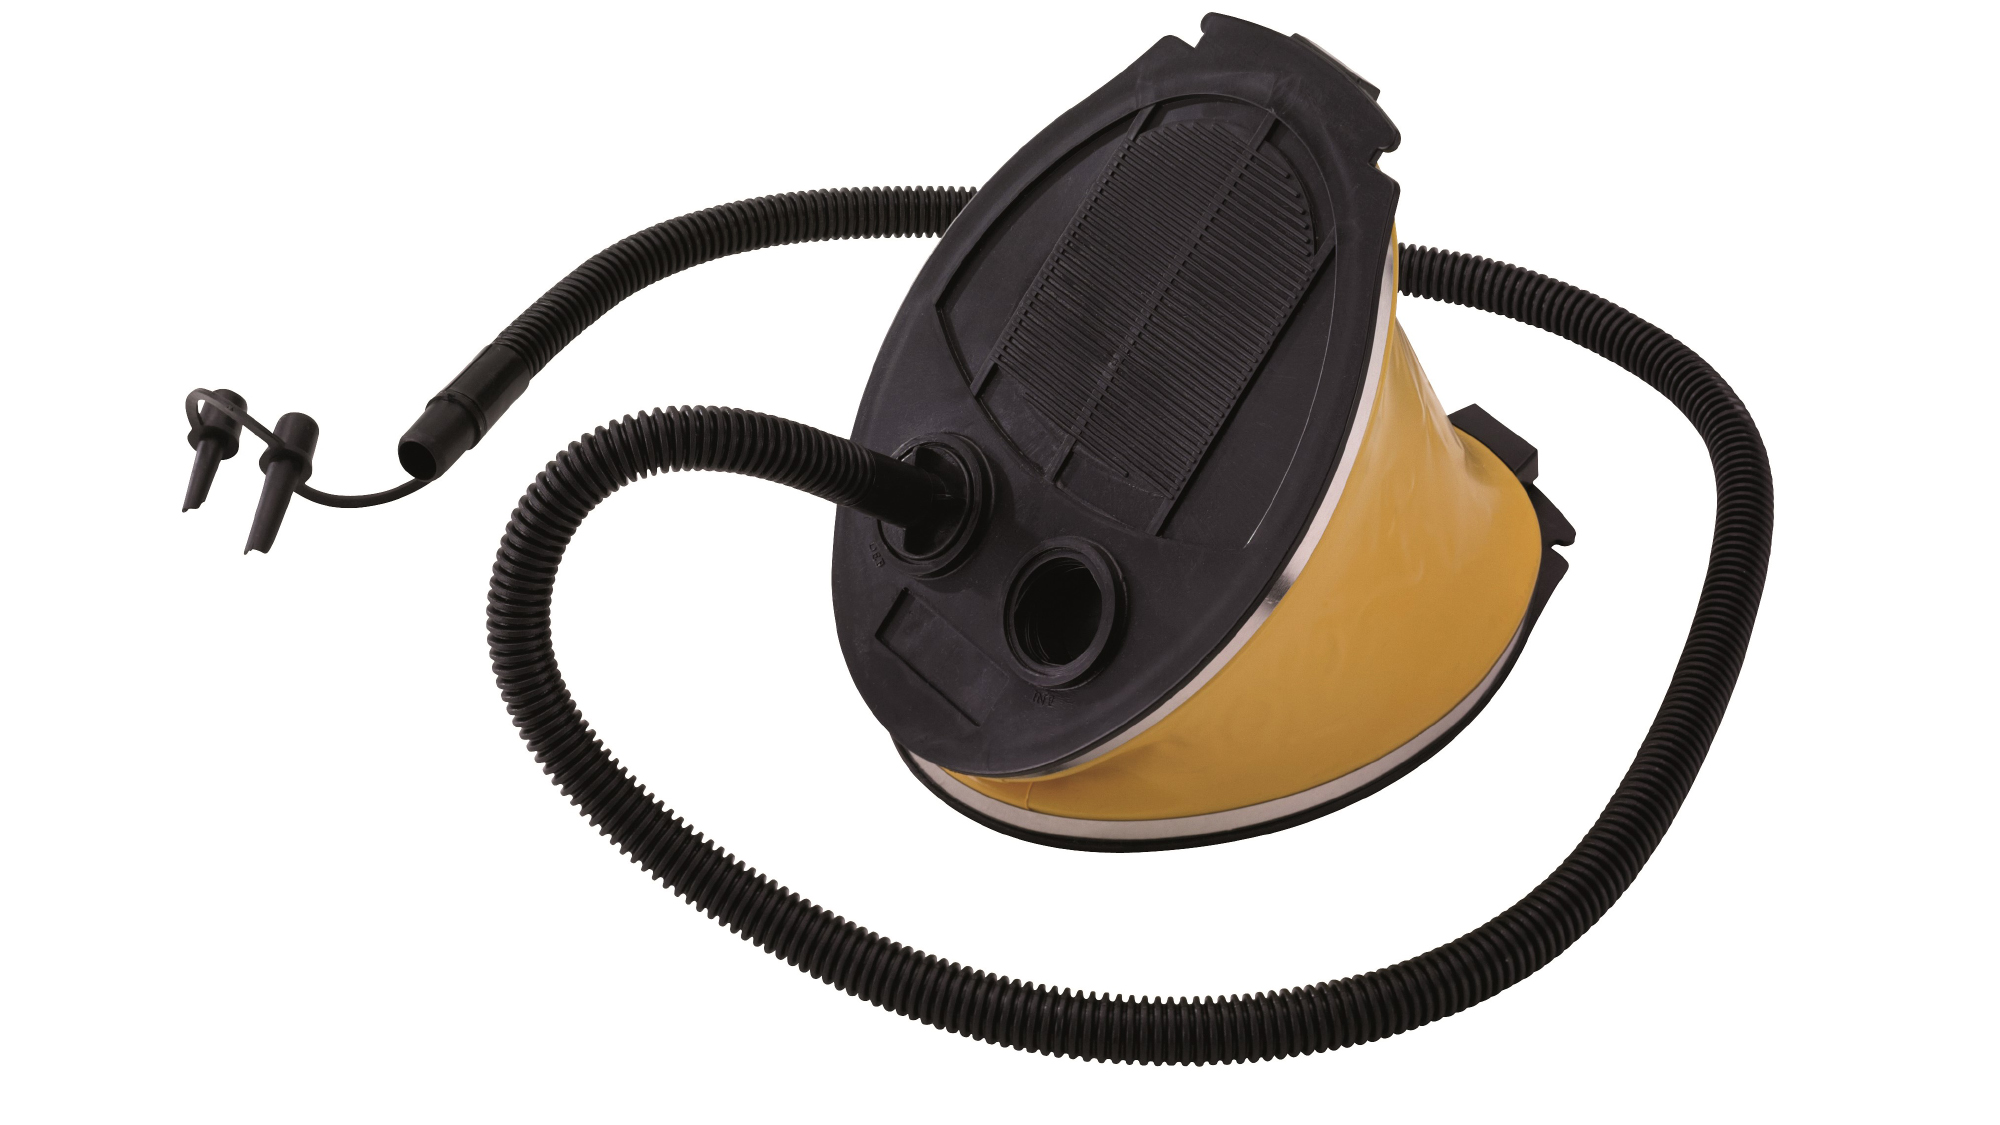 Easy Camp Bellows - Fodpumpe - 3 liter | Track pumps